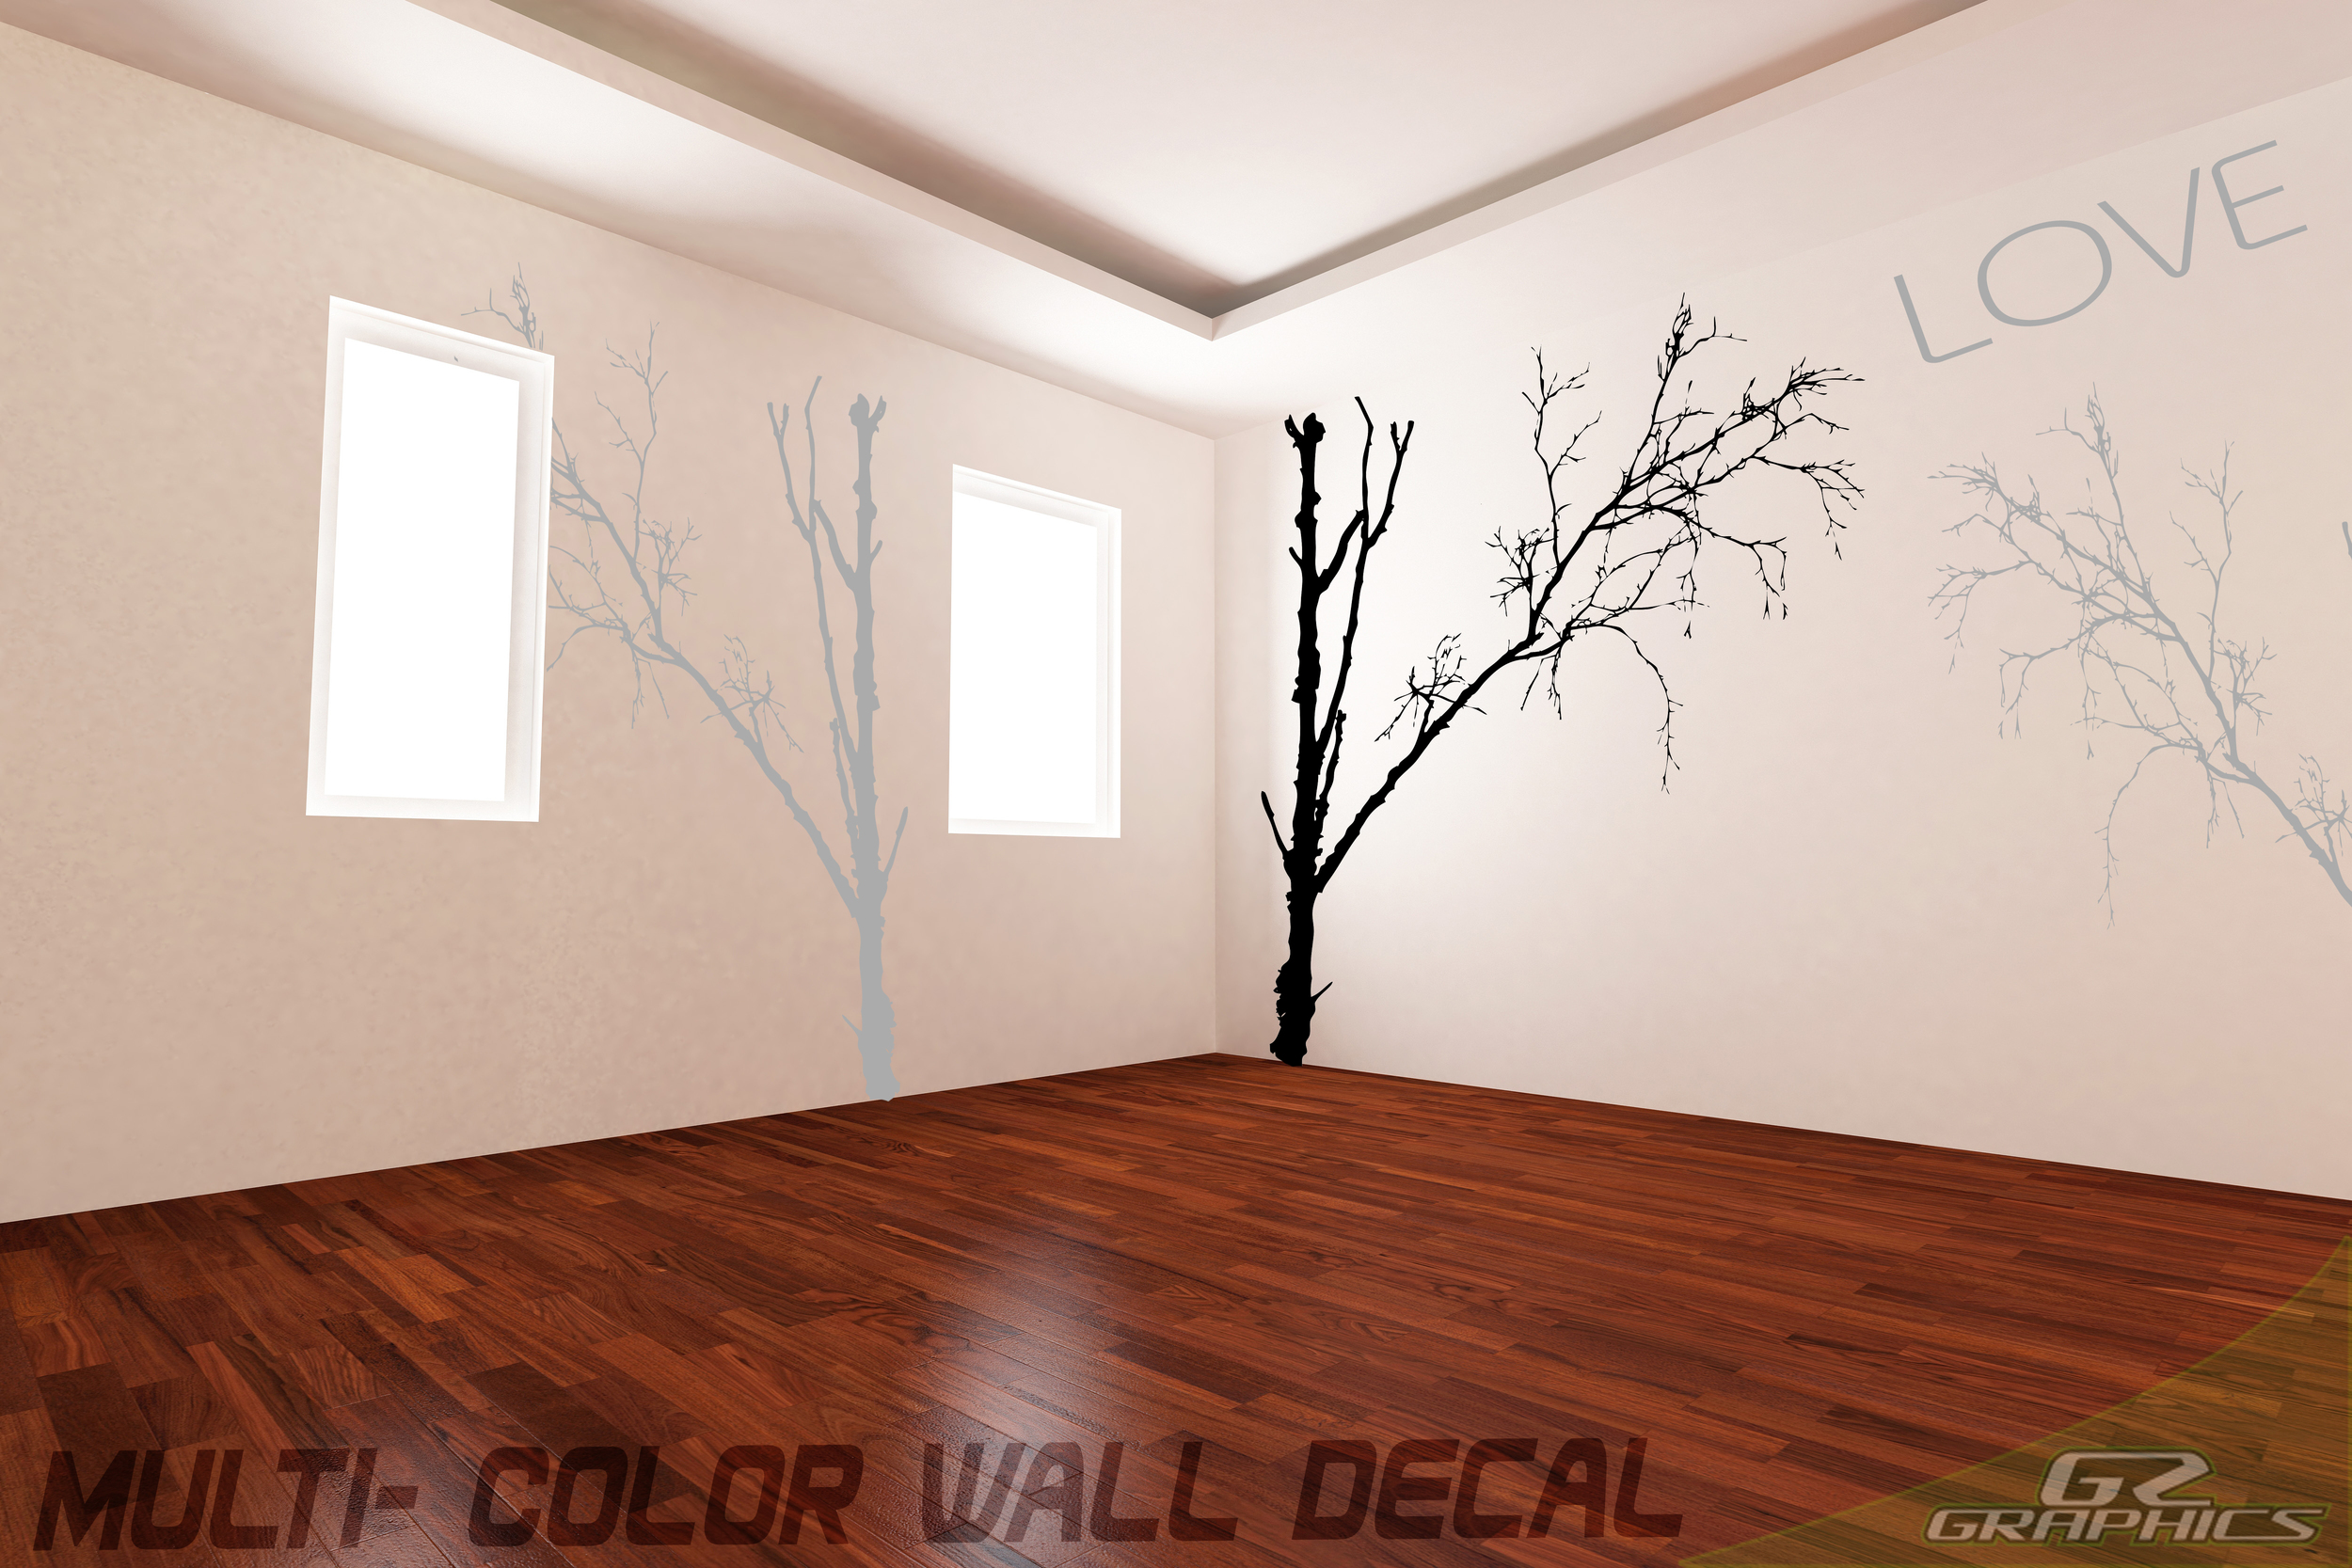 multi color wall decal.jpg